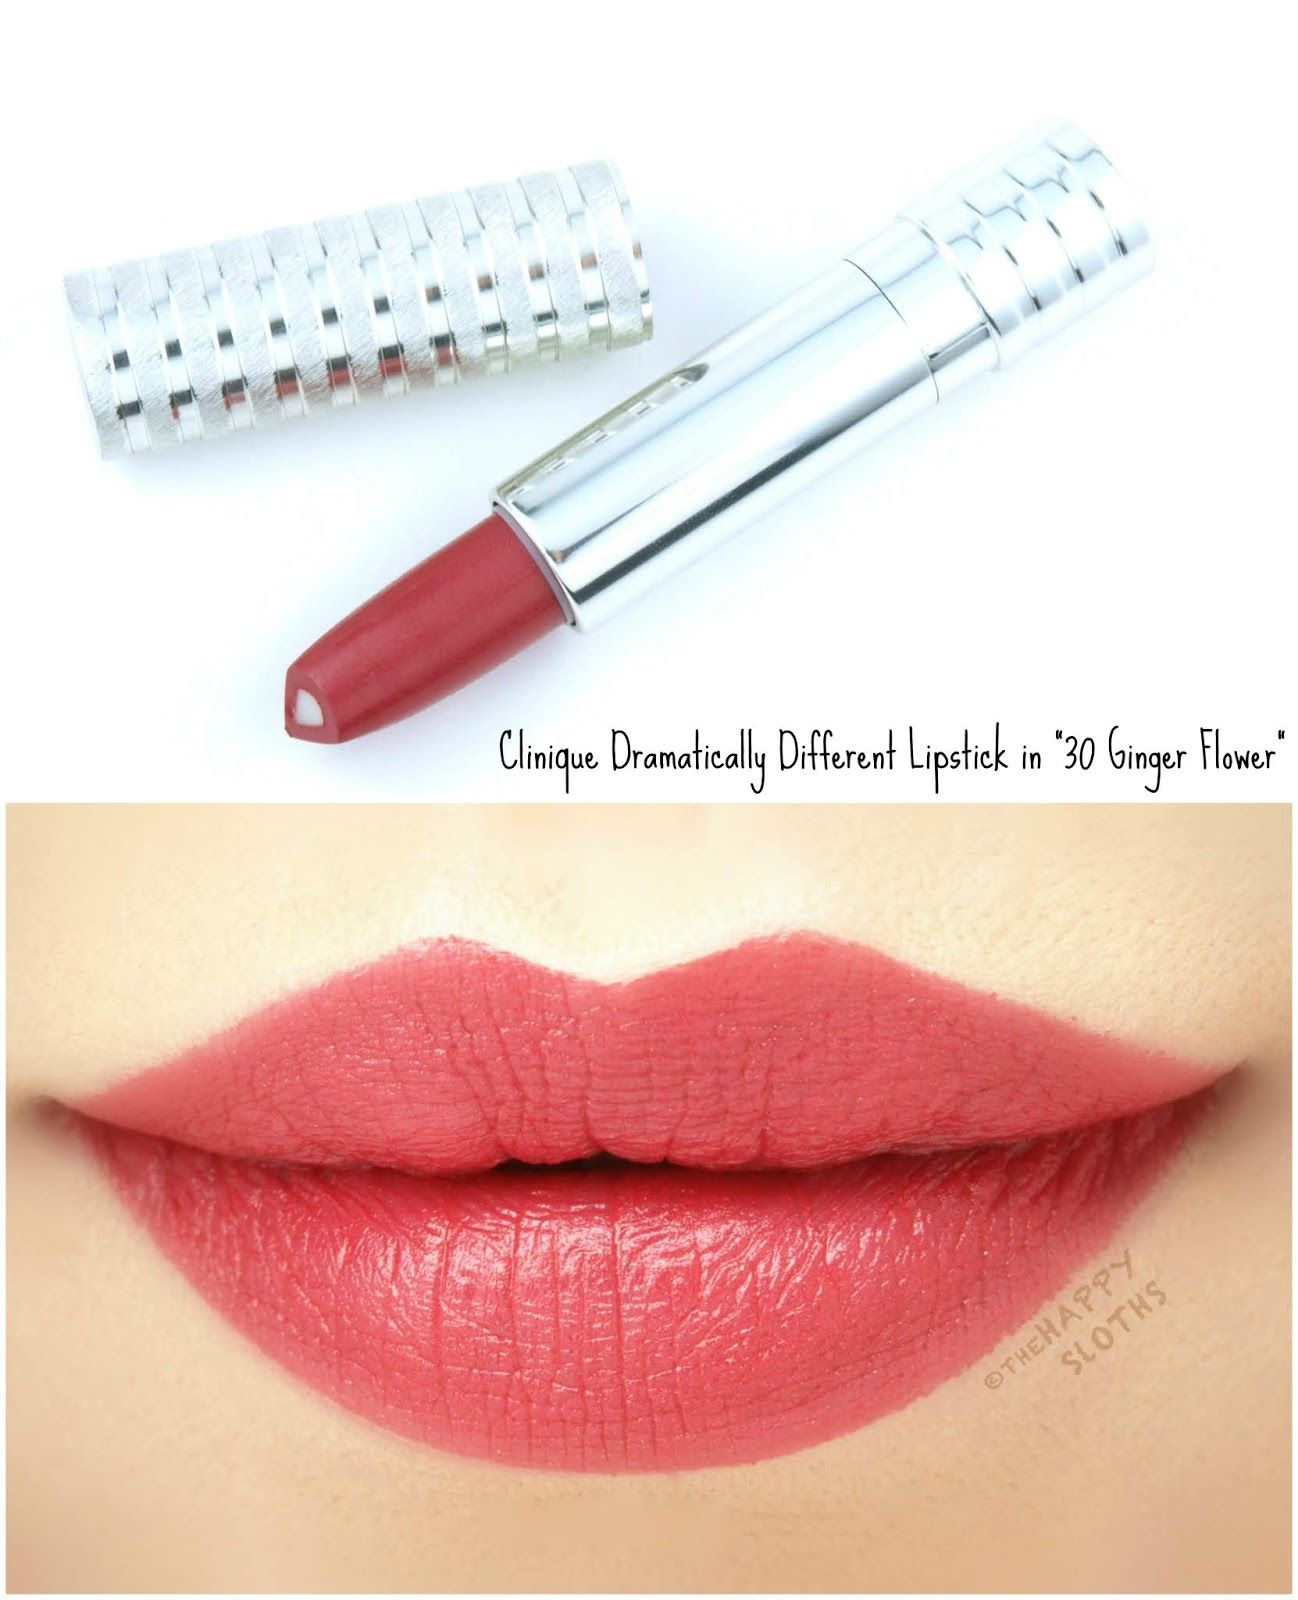 Clinique Dramatically Different Lipstick Shaping Lip Color Review And Swatches Lip Colors Lipstick Beauty Makeup